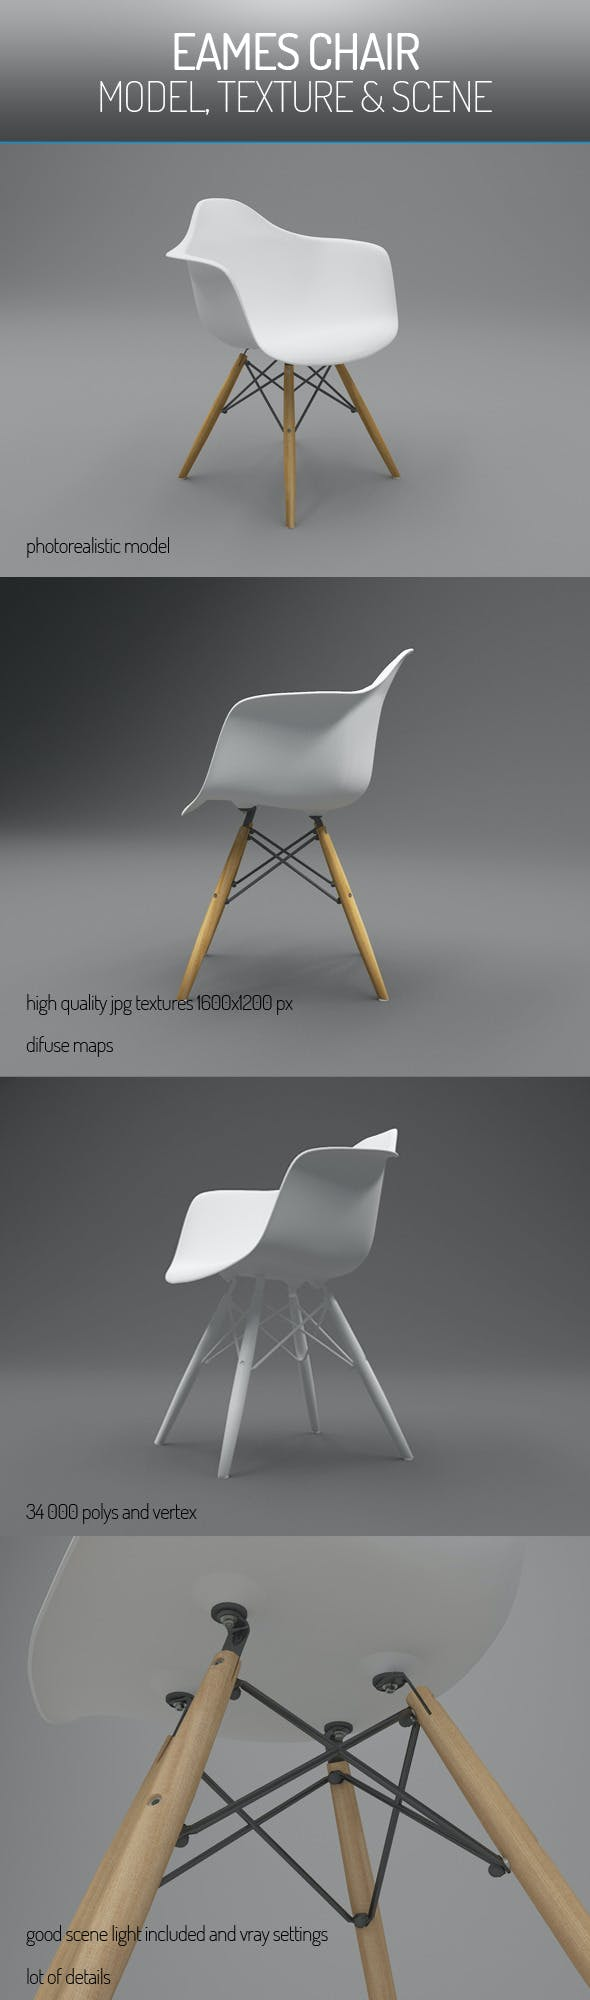 Eames Vitra Chair  - 3DOcean Item for Sale